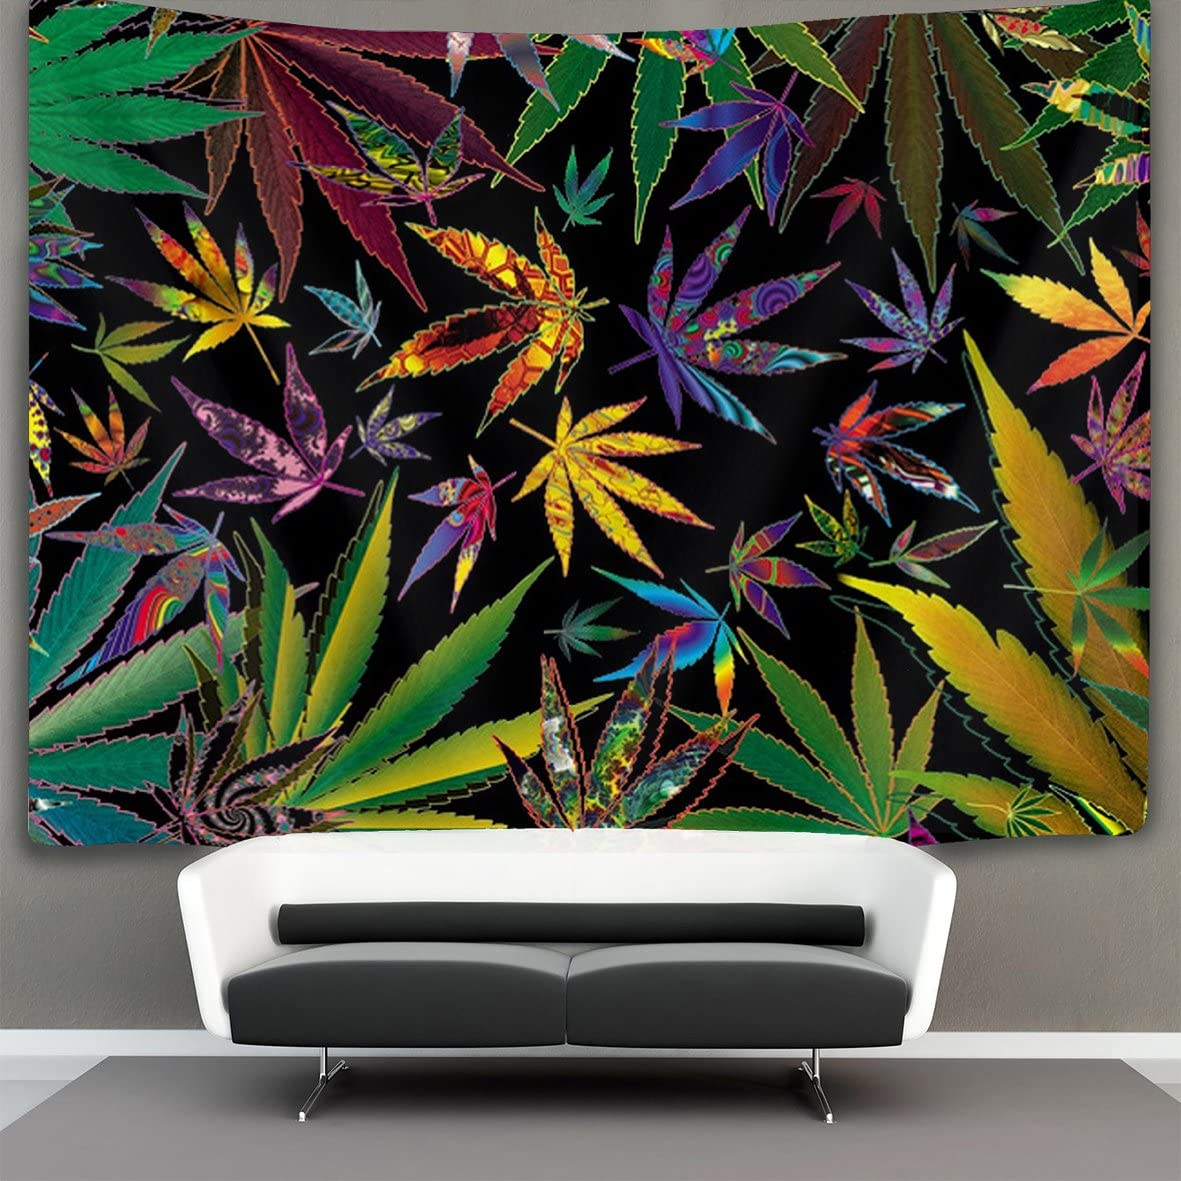 NiYoung Trippy Multi Marijuana Leaf Weed Wall Tapestry Hippie Art Tapestry Wall Hanging Home Decor Extra Large tablecloths 60×90 inches for Bedroom Living Room Dorm Room